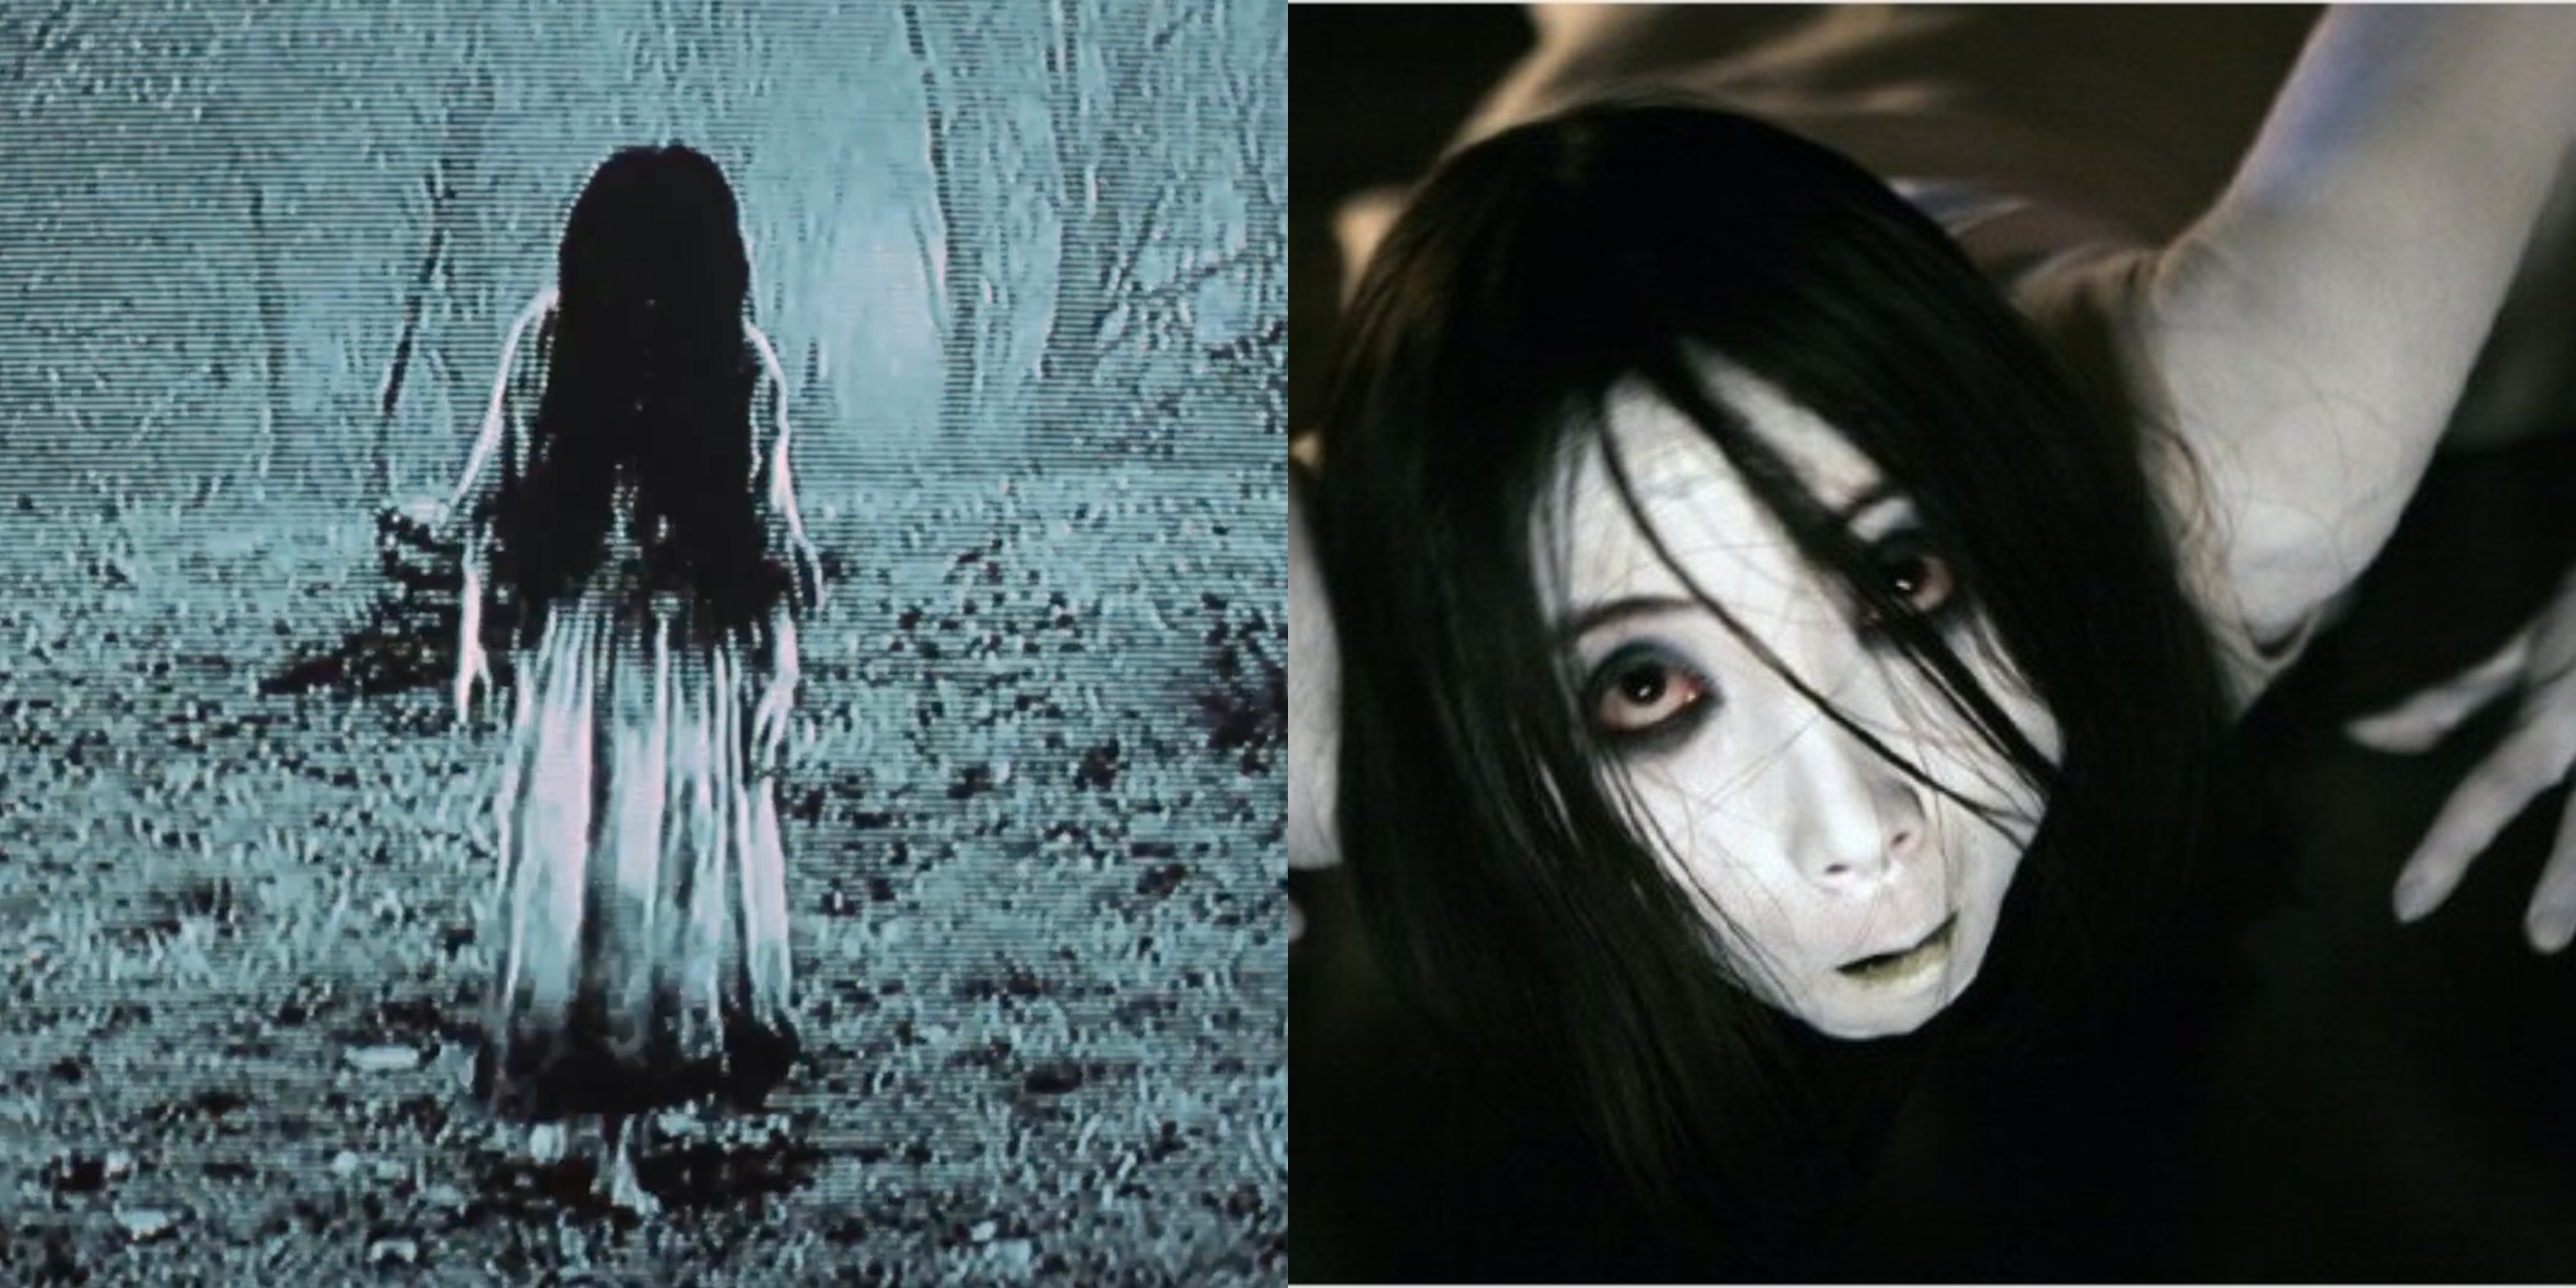 The Ring and The Grudge, would have a truly terrifying meeting with vengeful spirits ready to exact revenge will have viewers looking over their shoulders.